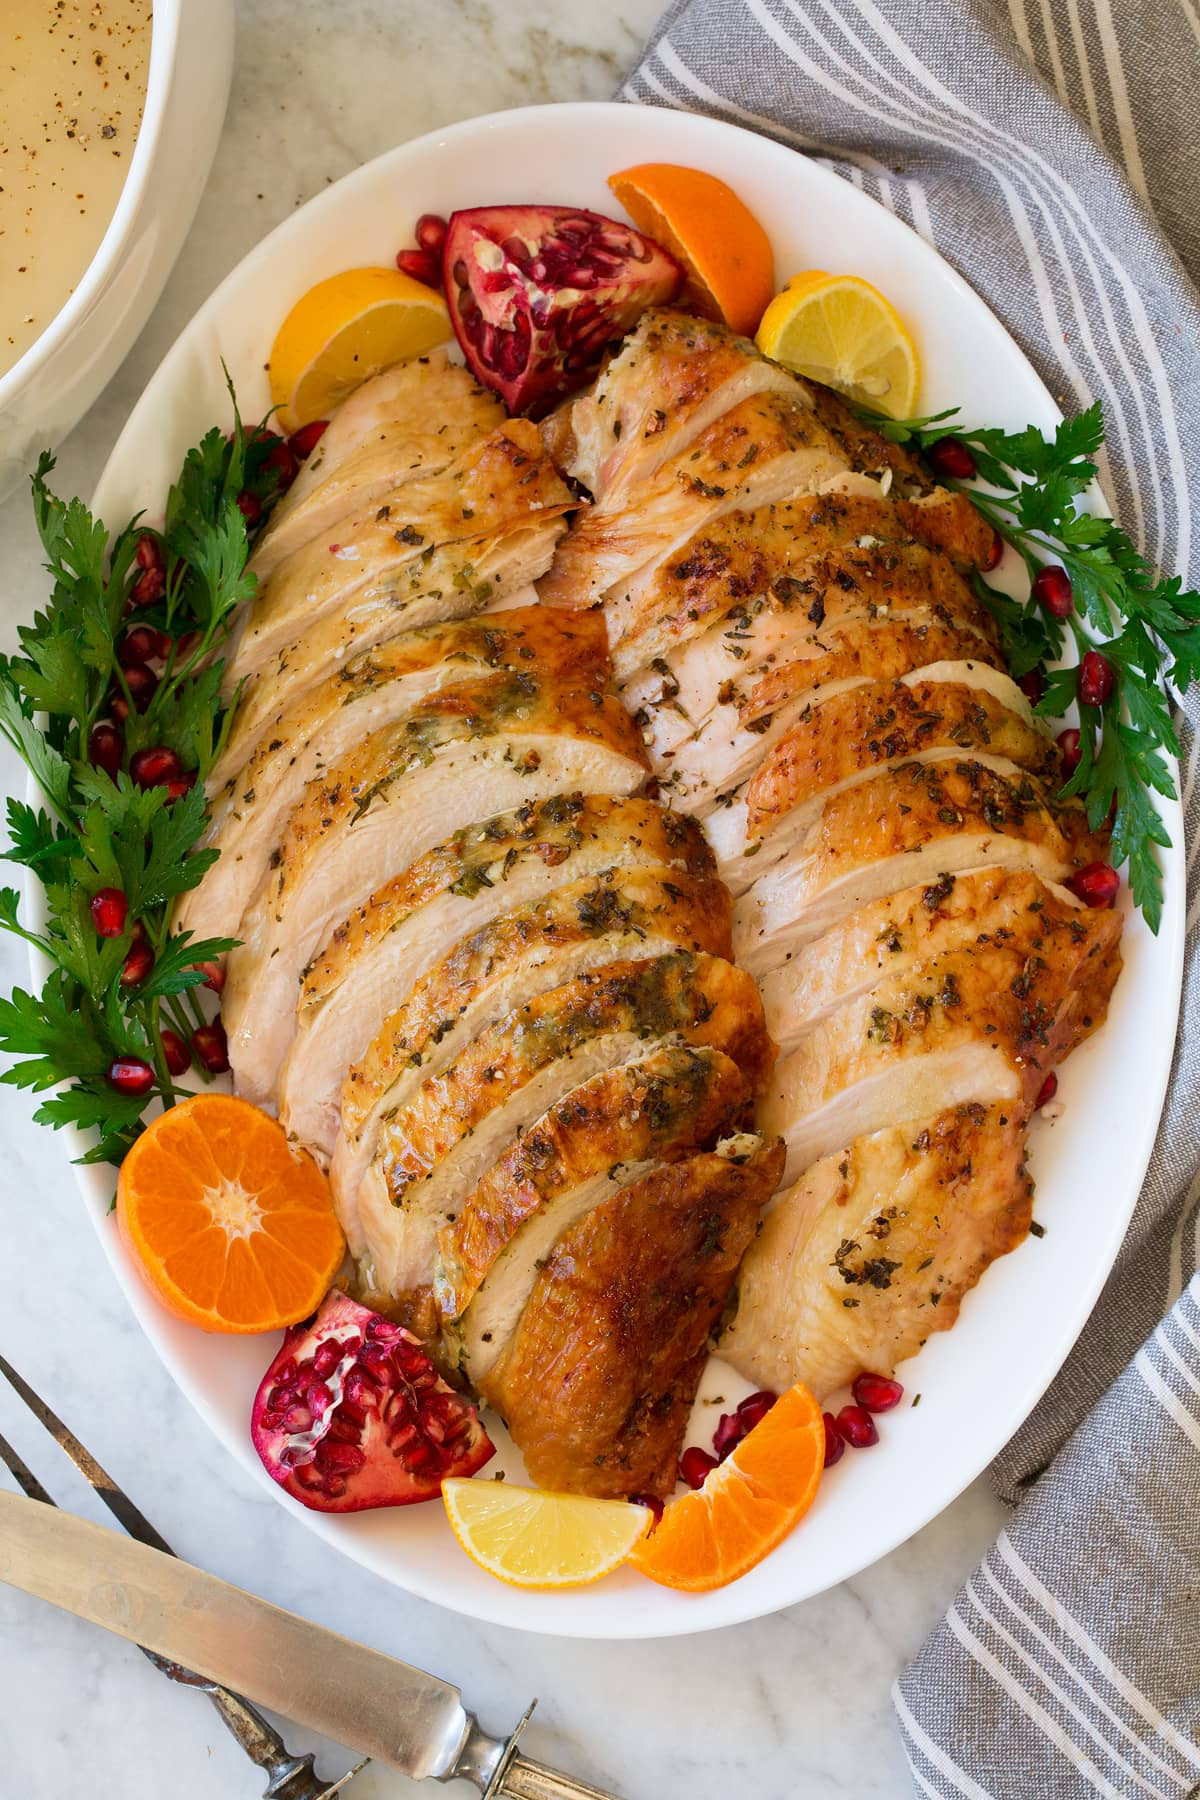 Overhead image of sliced Roast Turkey Breast on a white oval platter with decorative fruit and herbs.